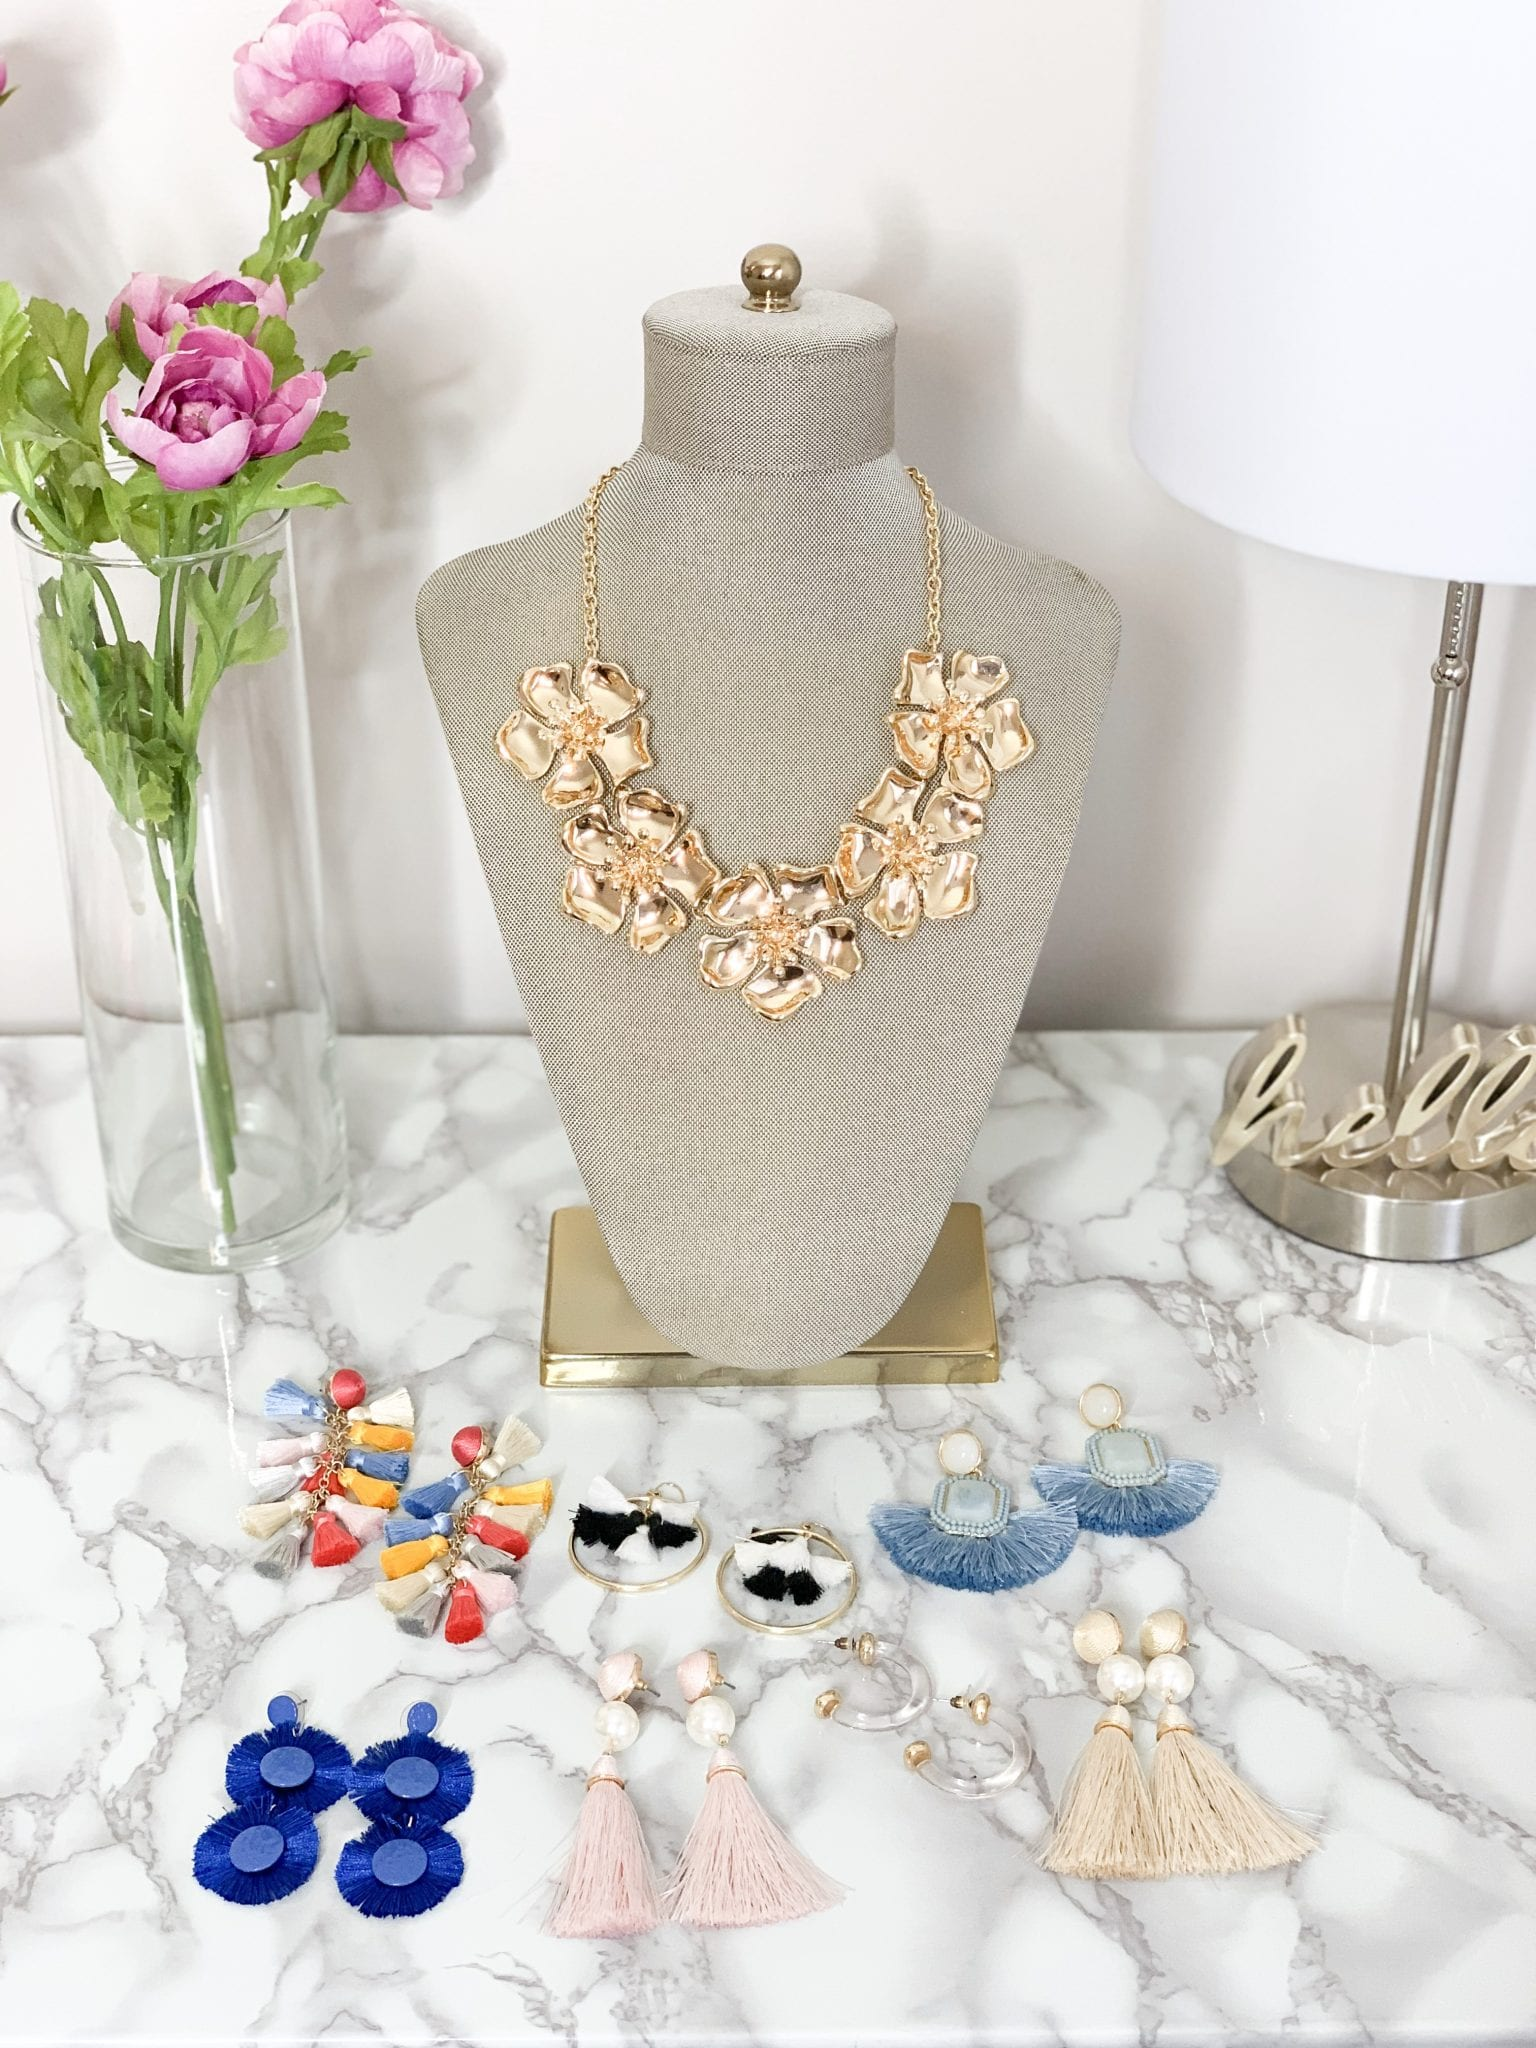 Pretty Jewelry for Spring from Sugarfix (Baublebar at Target